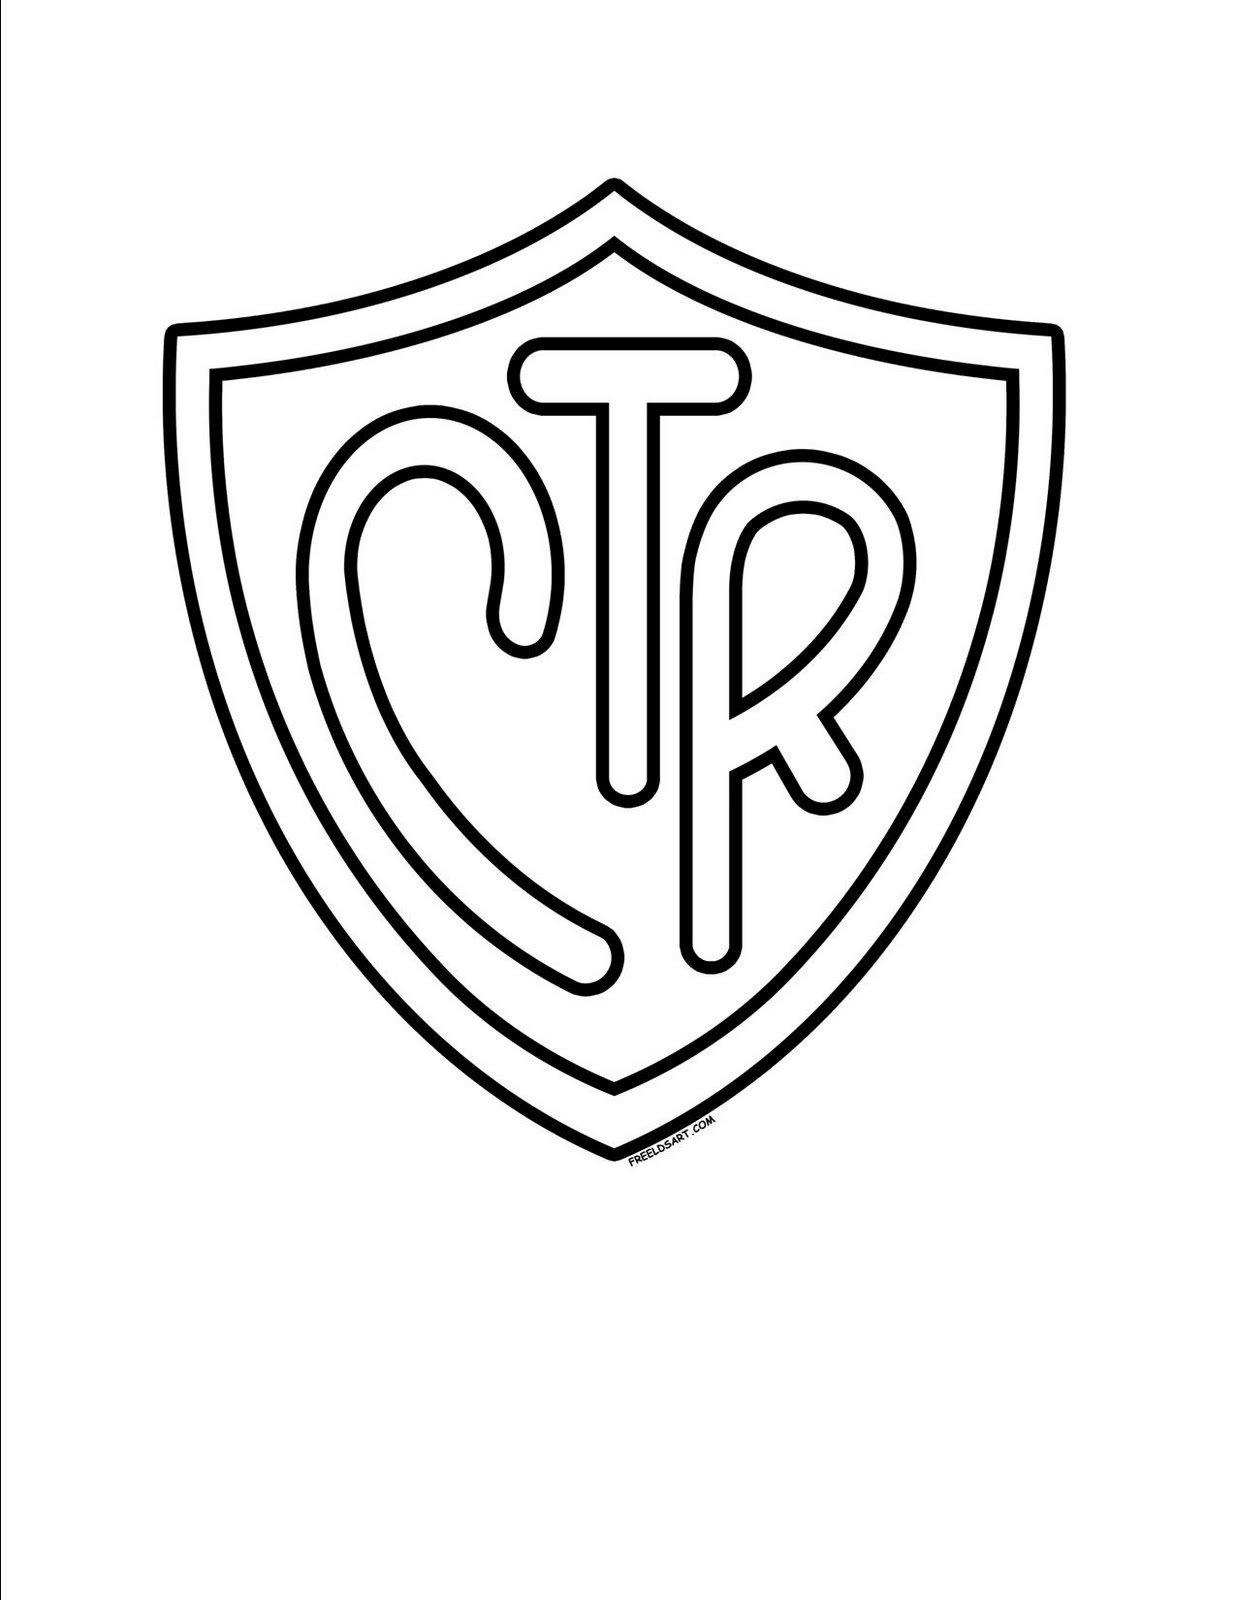 ctr shield coloring page - q=choose the right lds